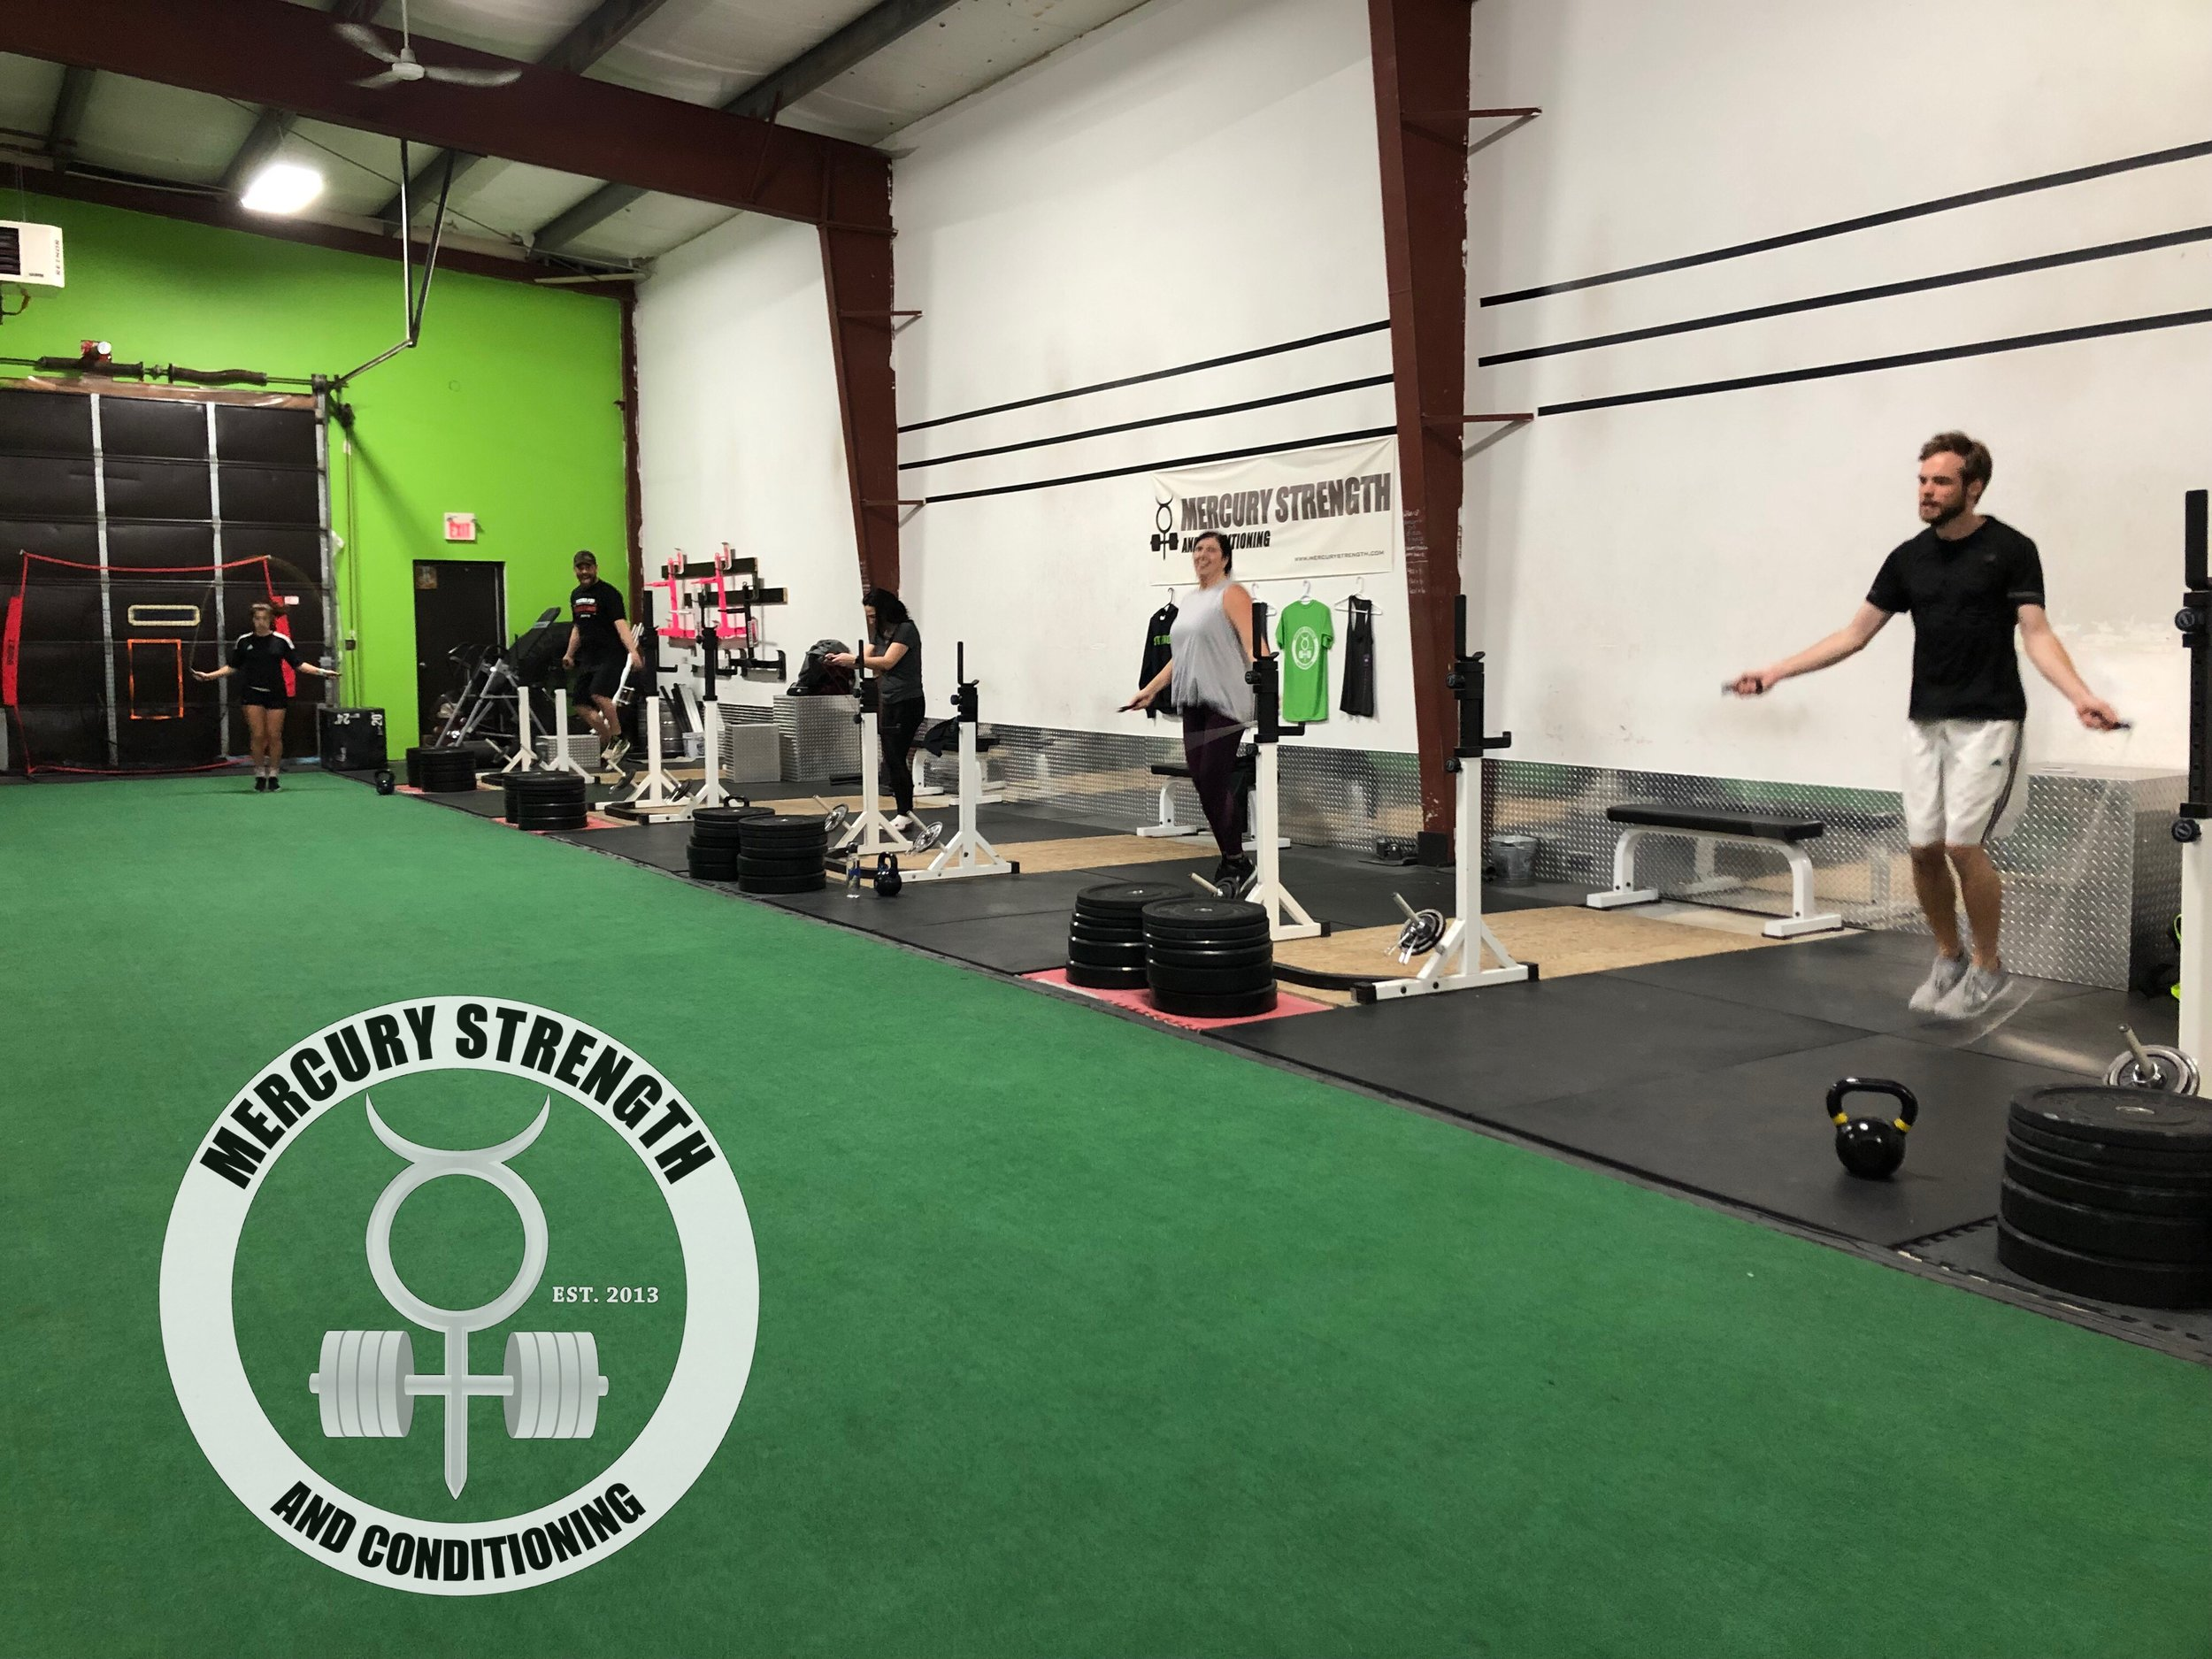 Gym-powerlifting-Olympic lifting-fitness-personal training-training-bootcamp-crossfit-kingston-kingston gym-kids-mercury-strength-conditioning-athlete-skipping